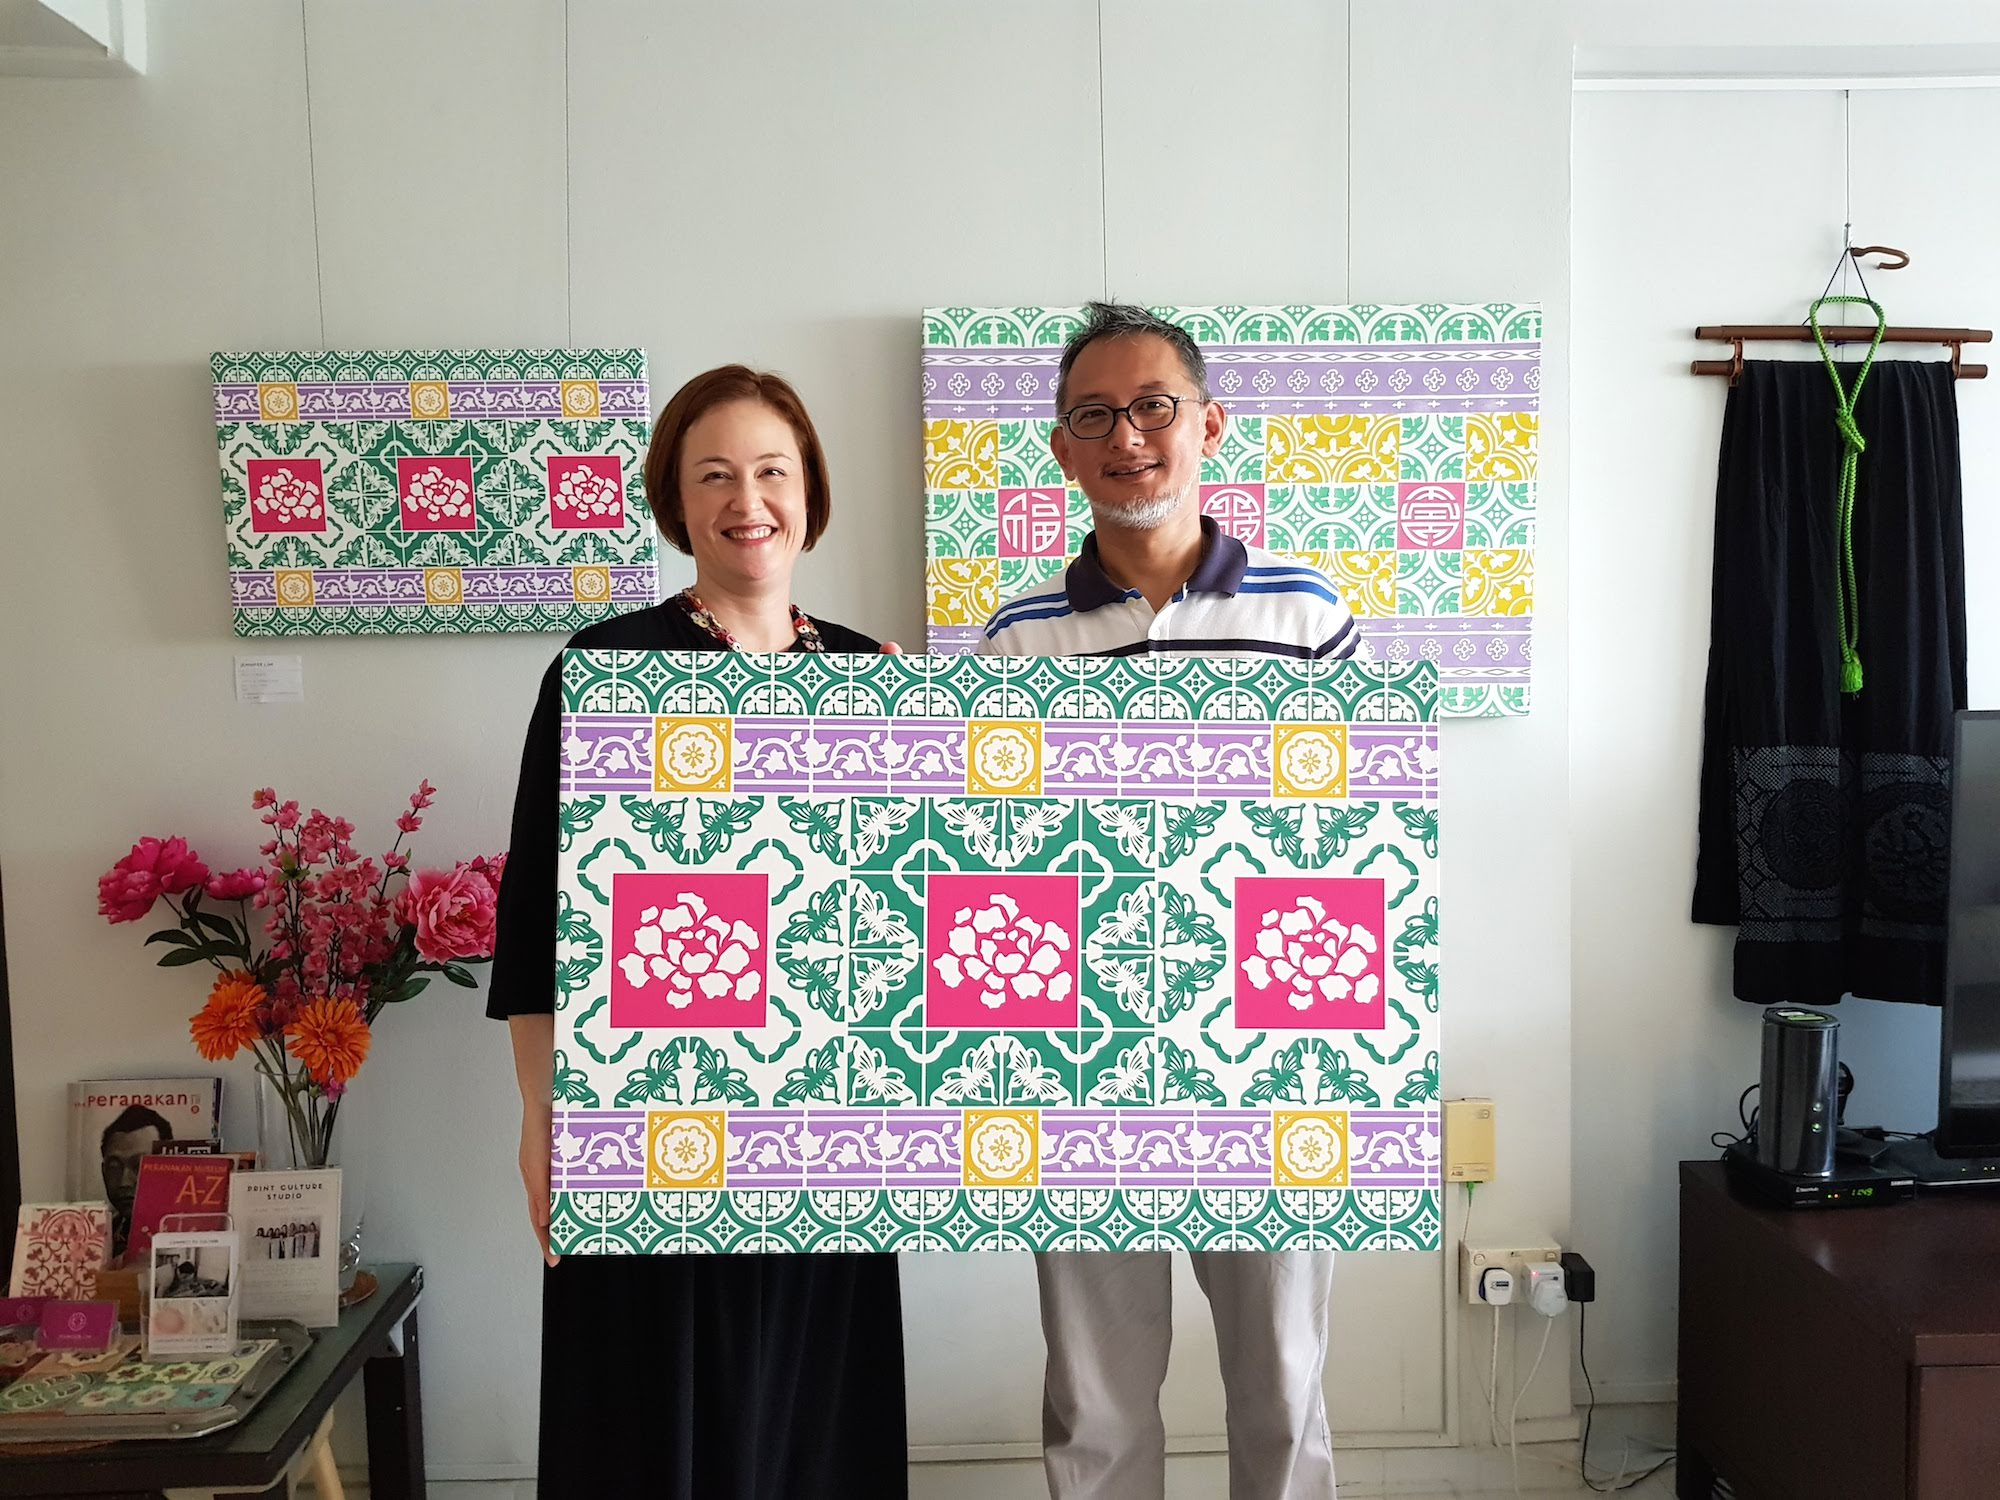 Peony butterflies in Peranakan tile artwork